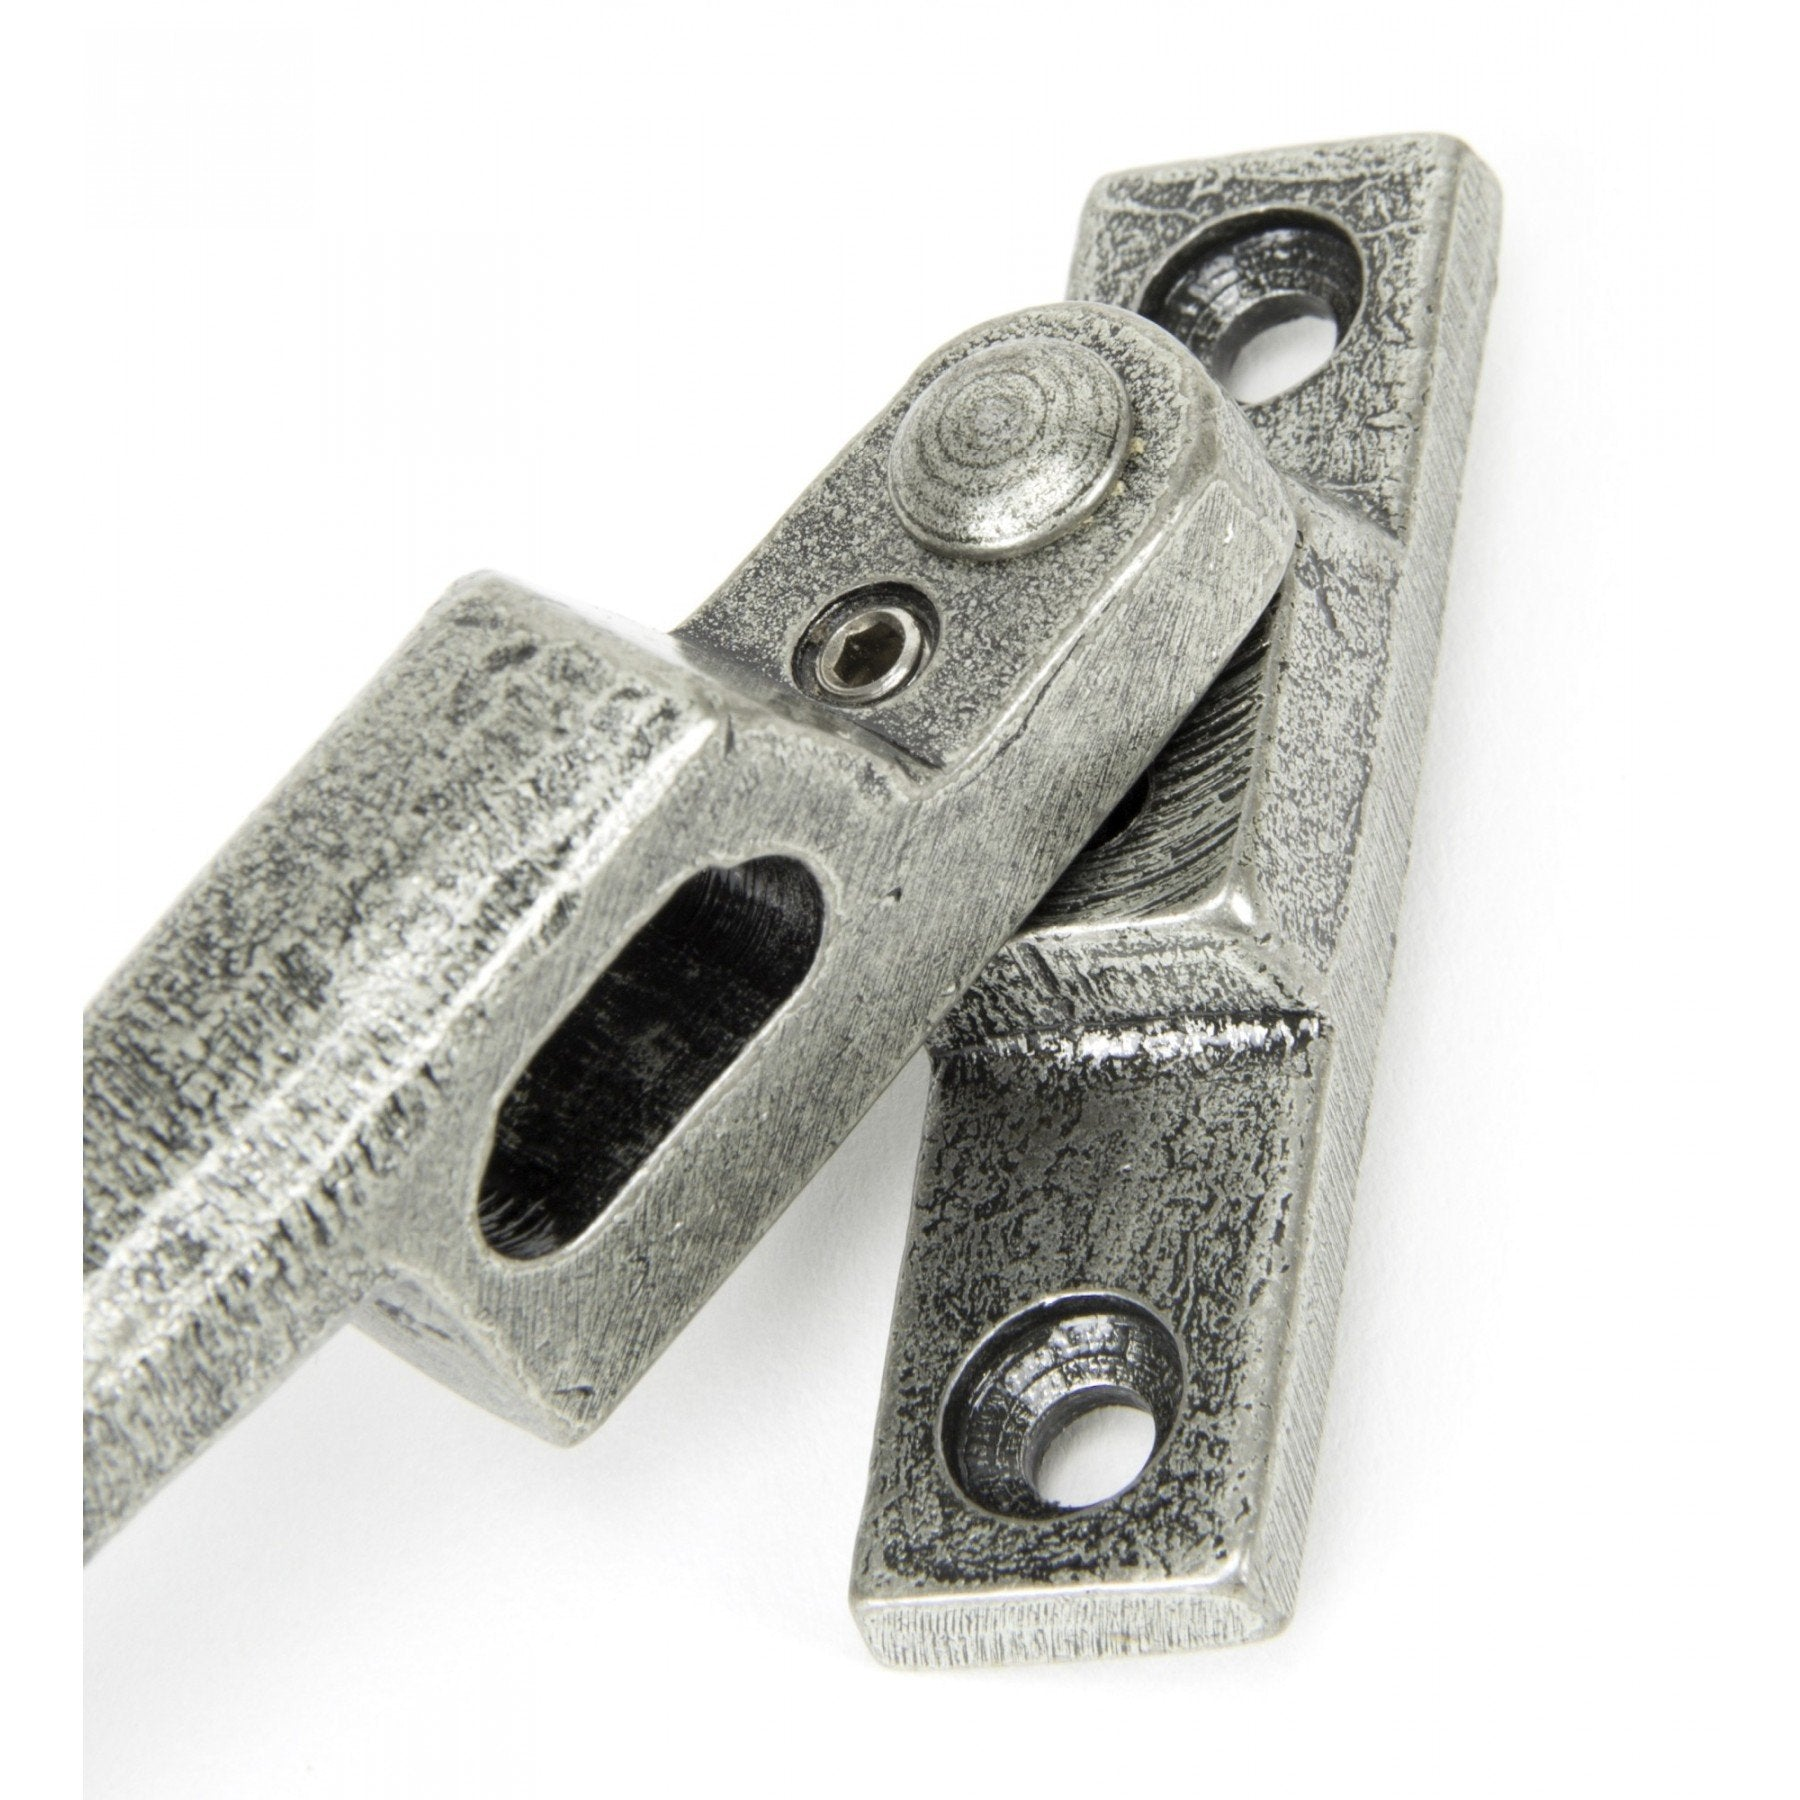 Pewter Night Vent Fastener LH - Locking